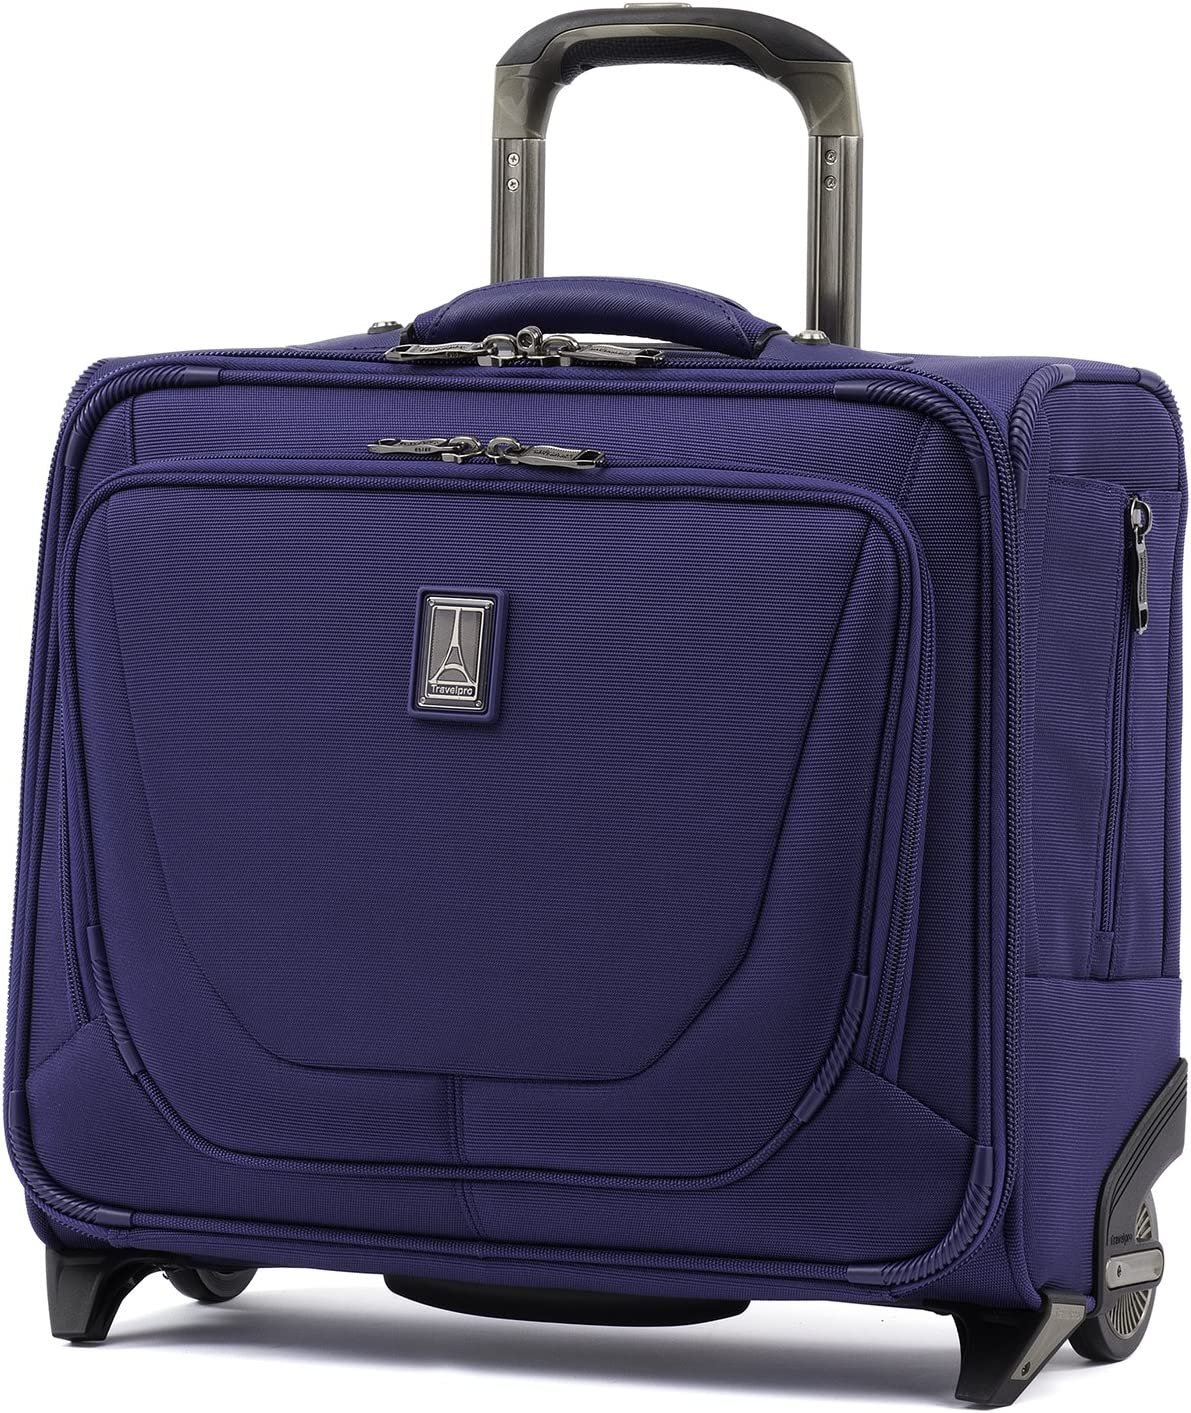 Travelpro Crew 11 - Rolling Underseat Tote Carry-On Bag, Indigo, 16-Inch